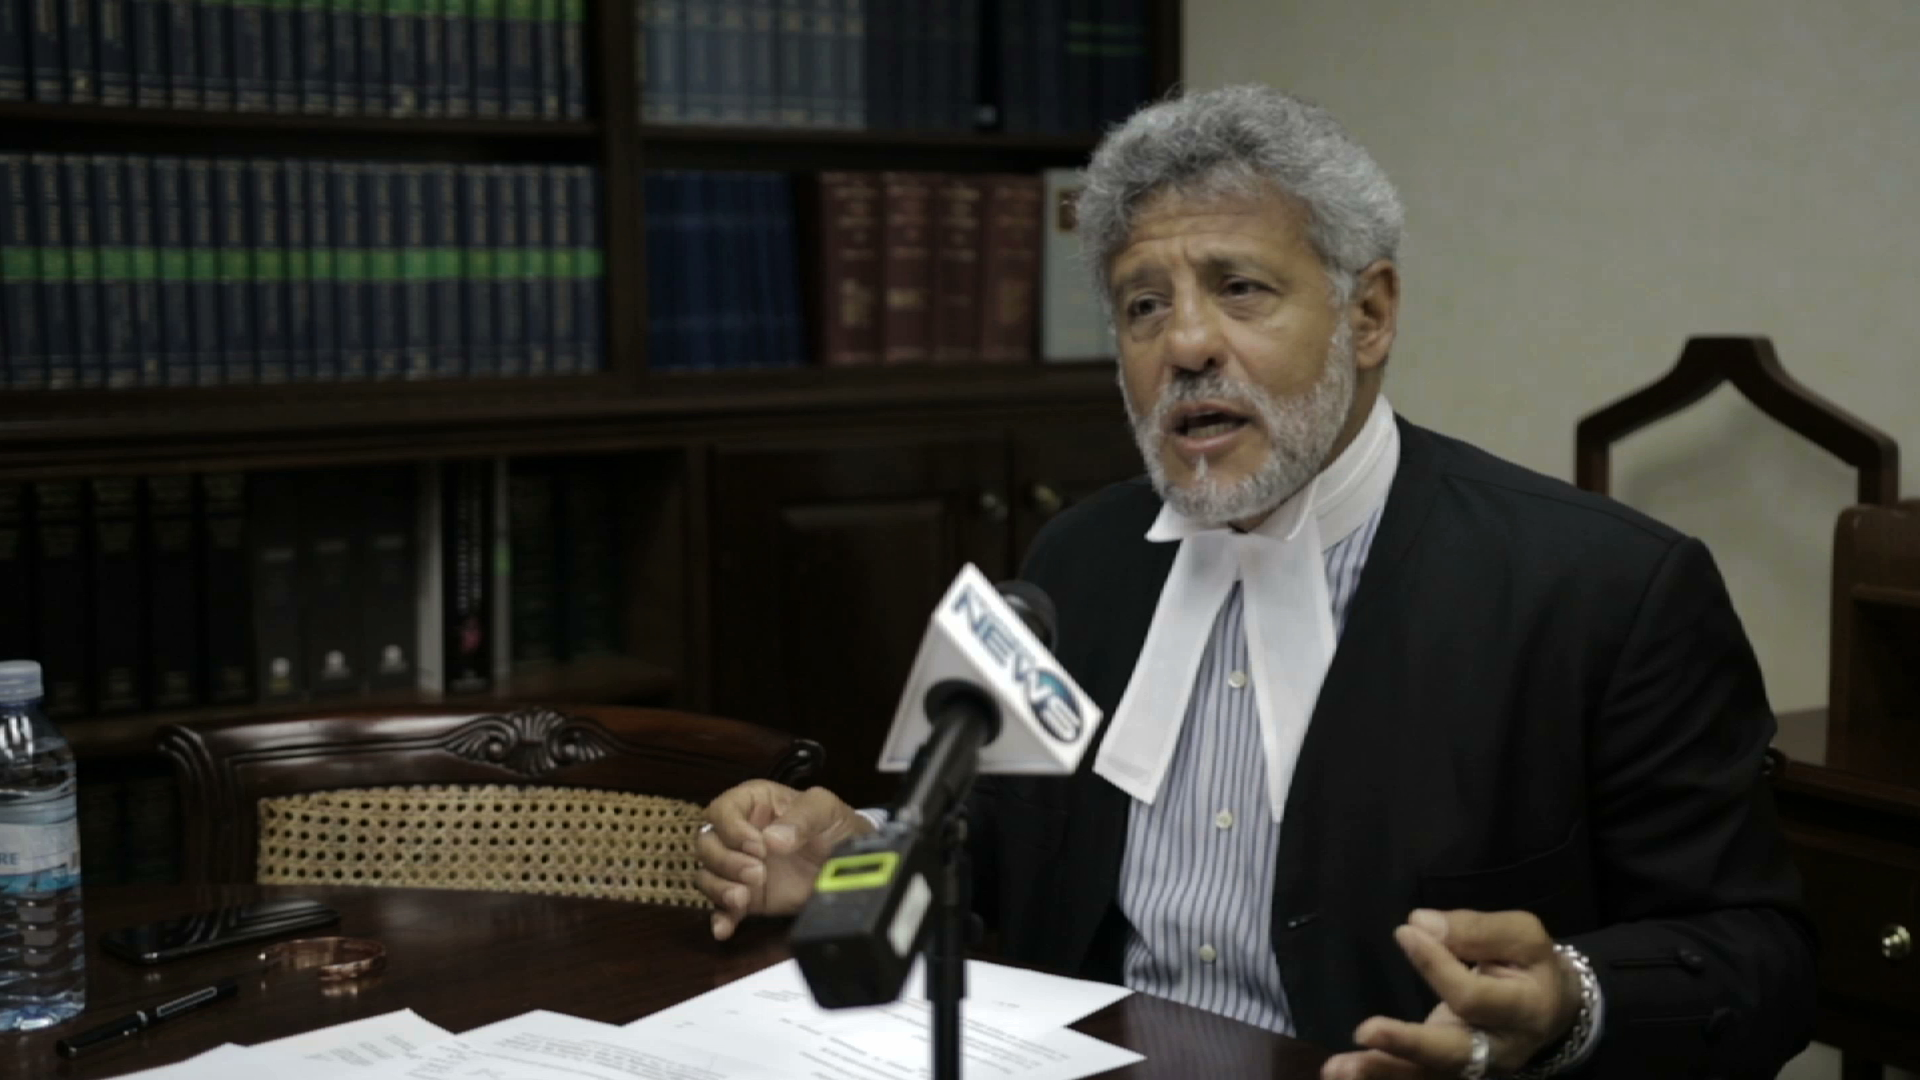 Rights Bahamas says immigration corruption claims must be fully investigated